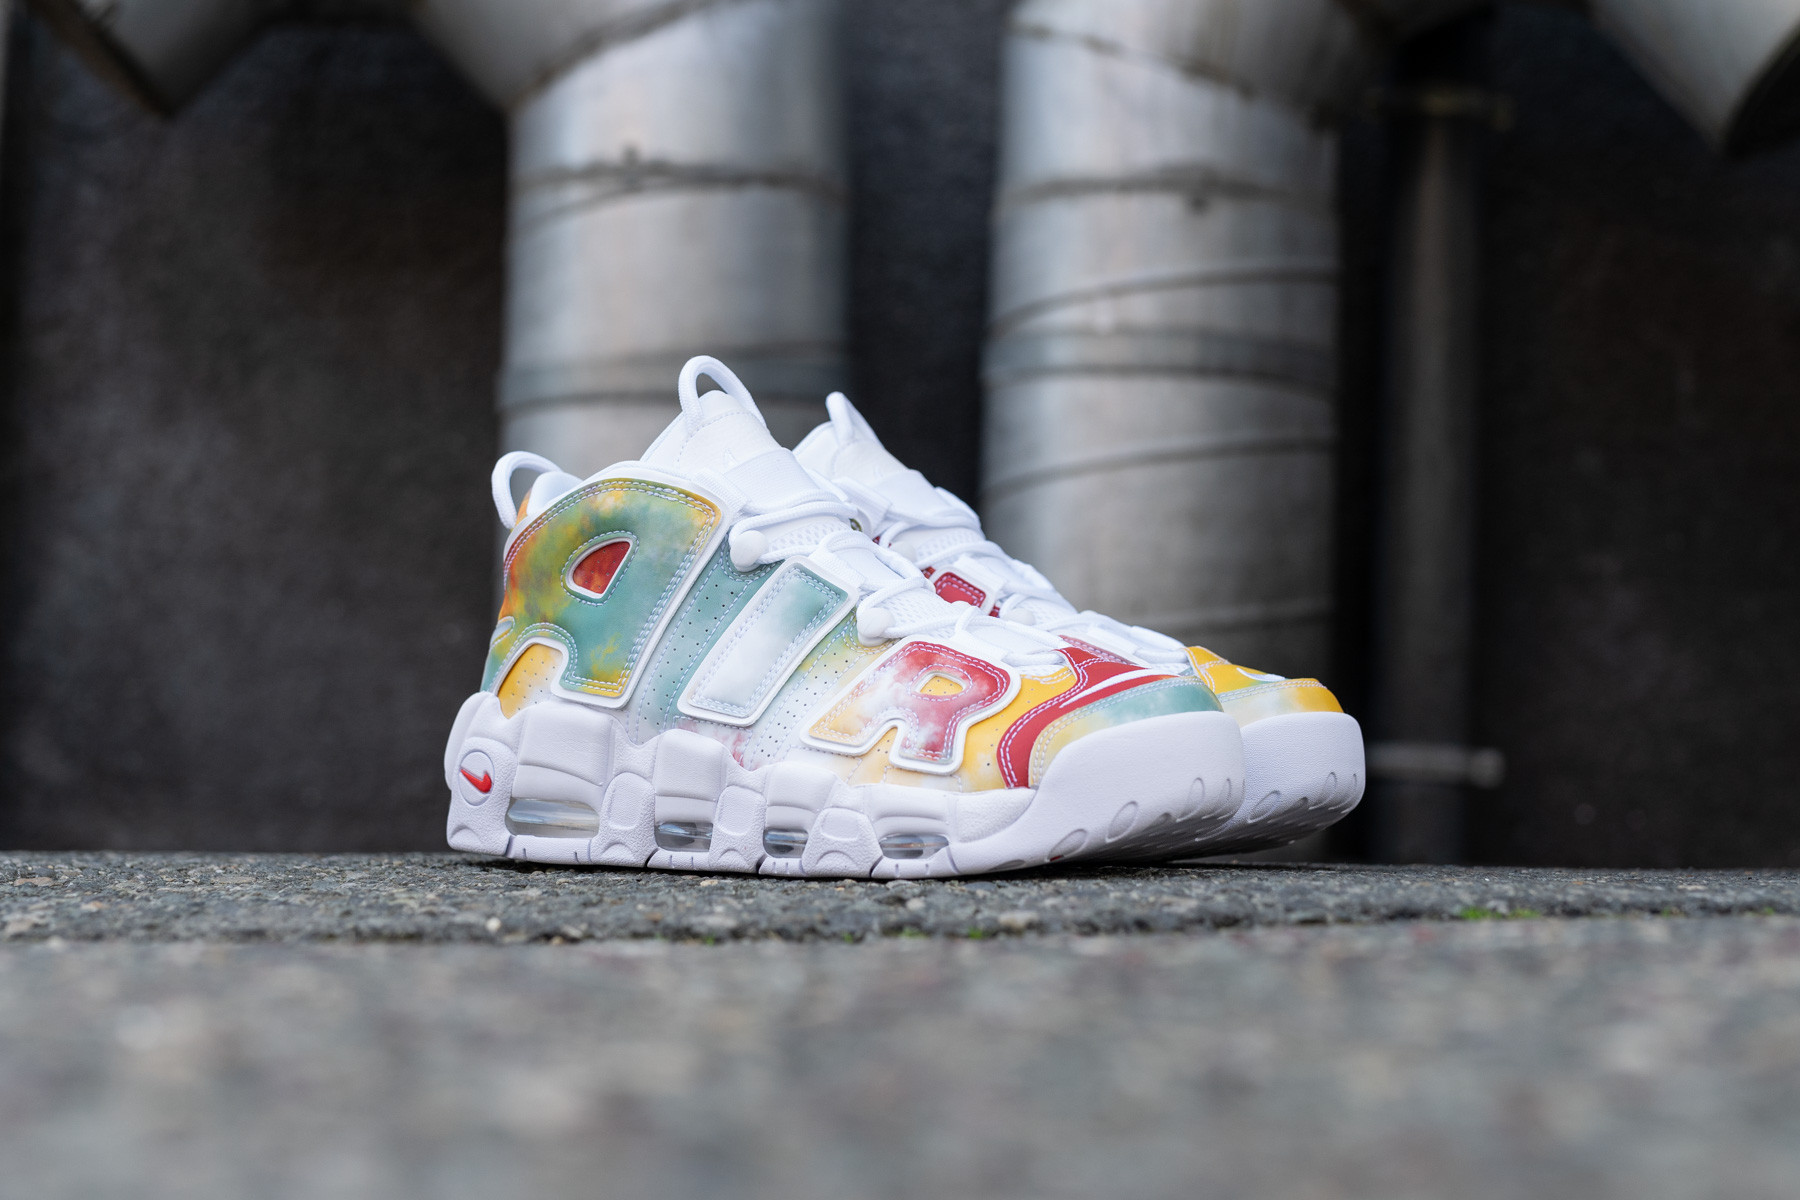 Nike Air More Uptempo`96 UK QS - Sneakers - Sneaker.no 82f5d8d05